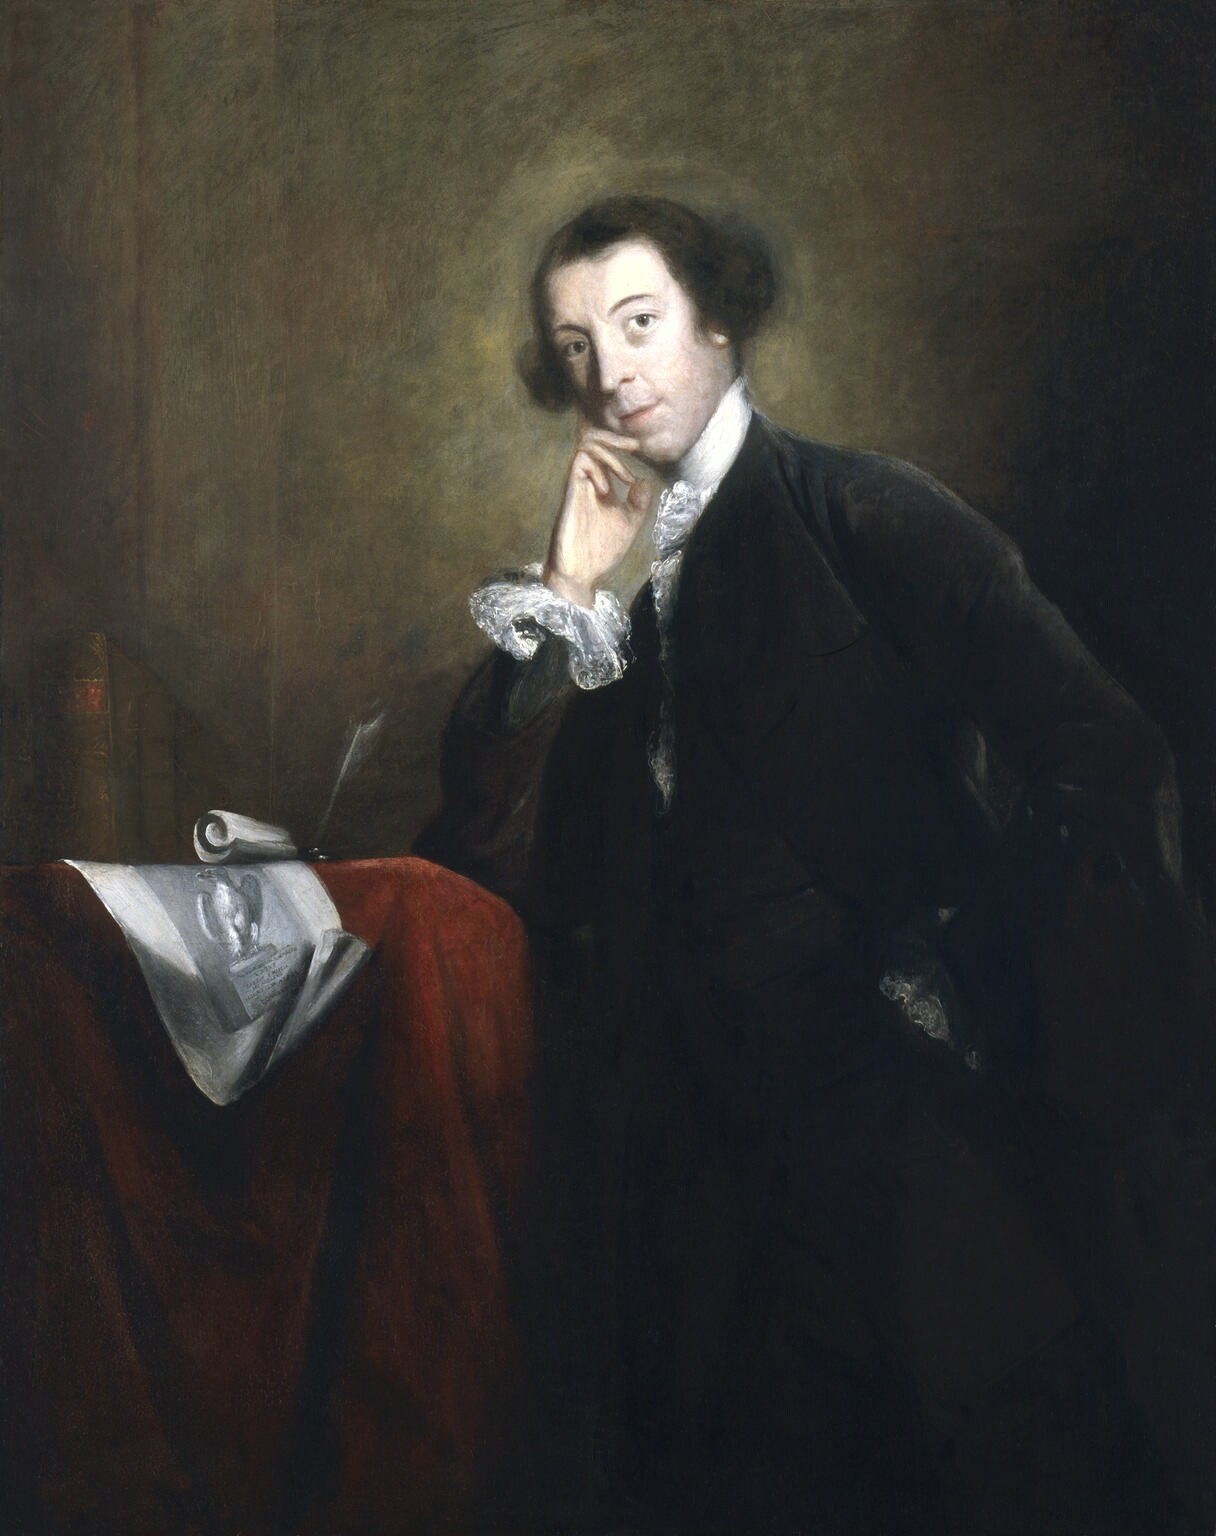 https://upload.wikimedia.org/wikipedia/commons/a/a0/Horace_Walpole.jpg